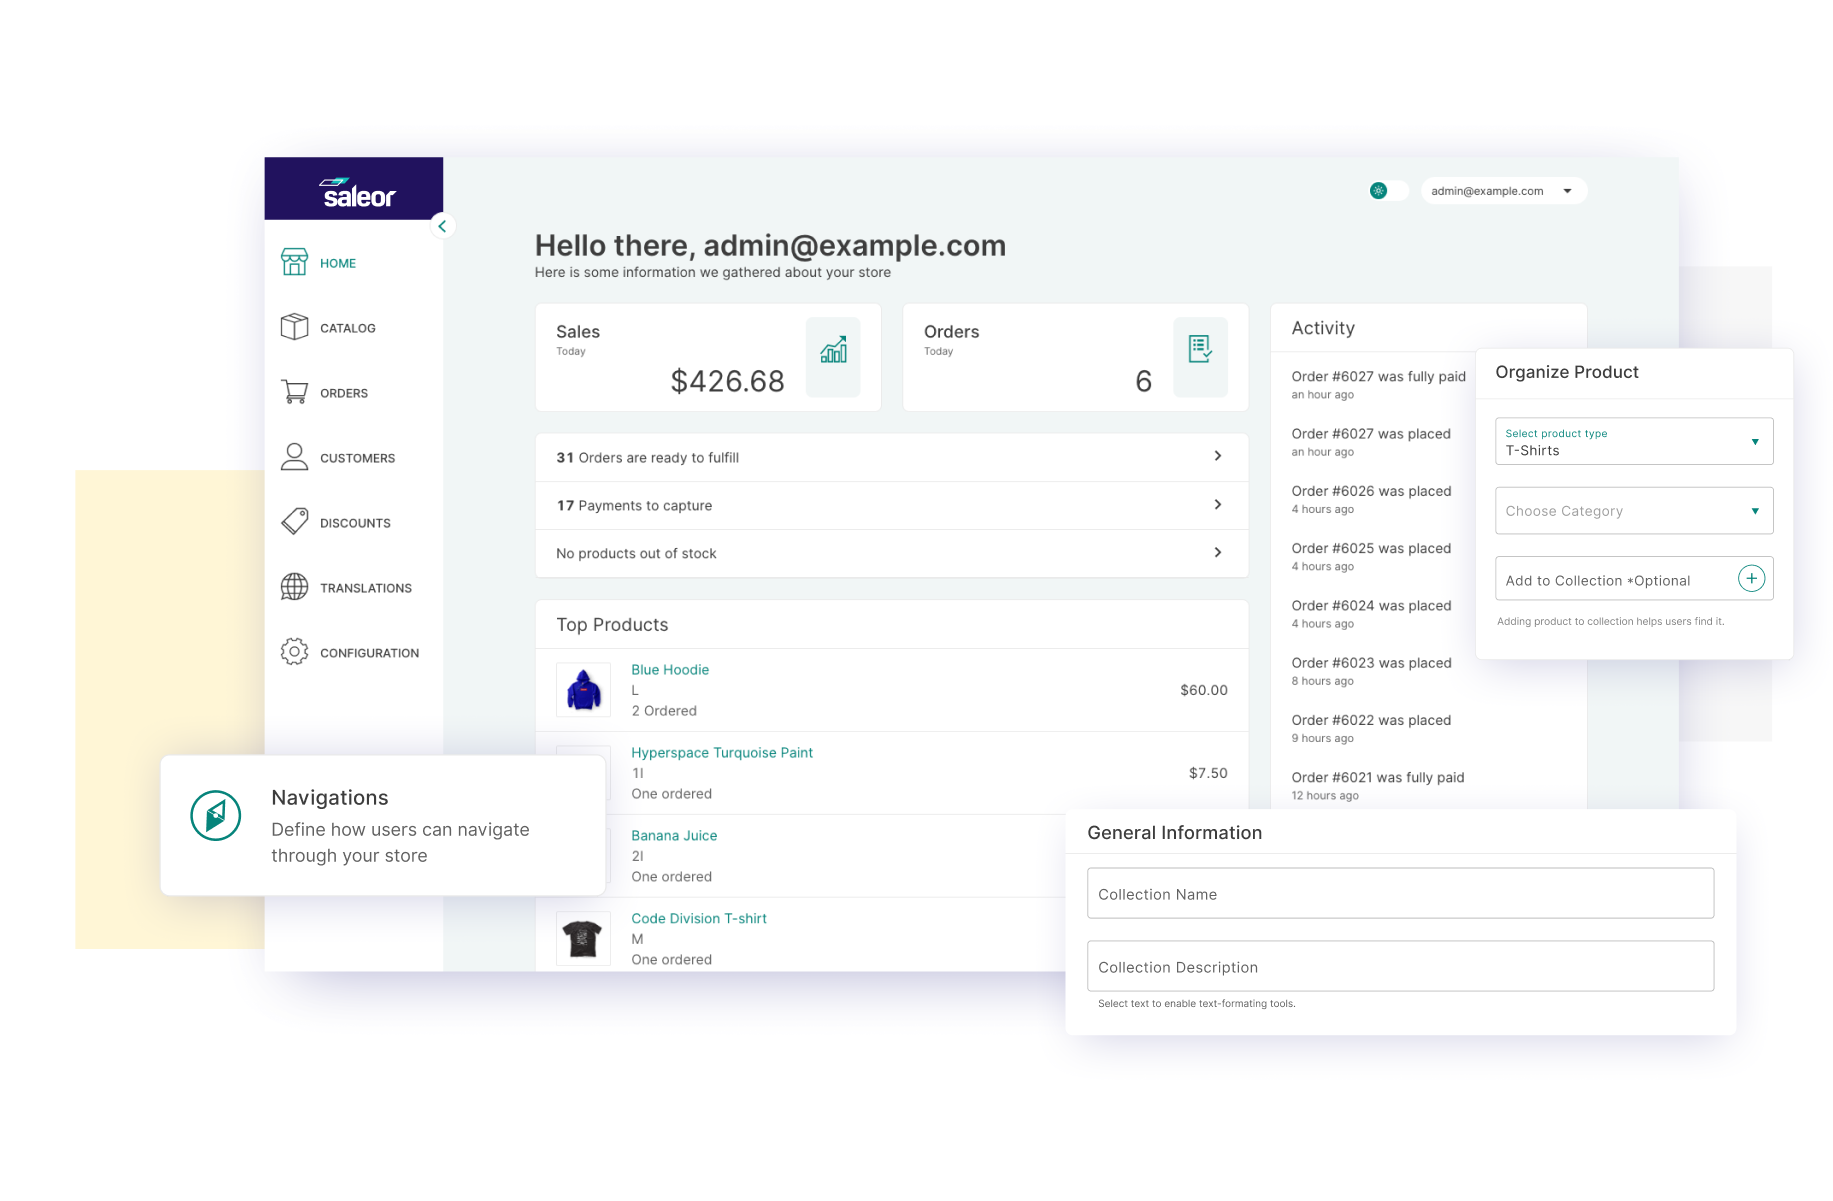 Saleor Dashboard - Modern UI for managing your e-commerce